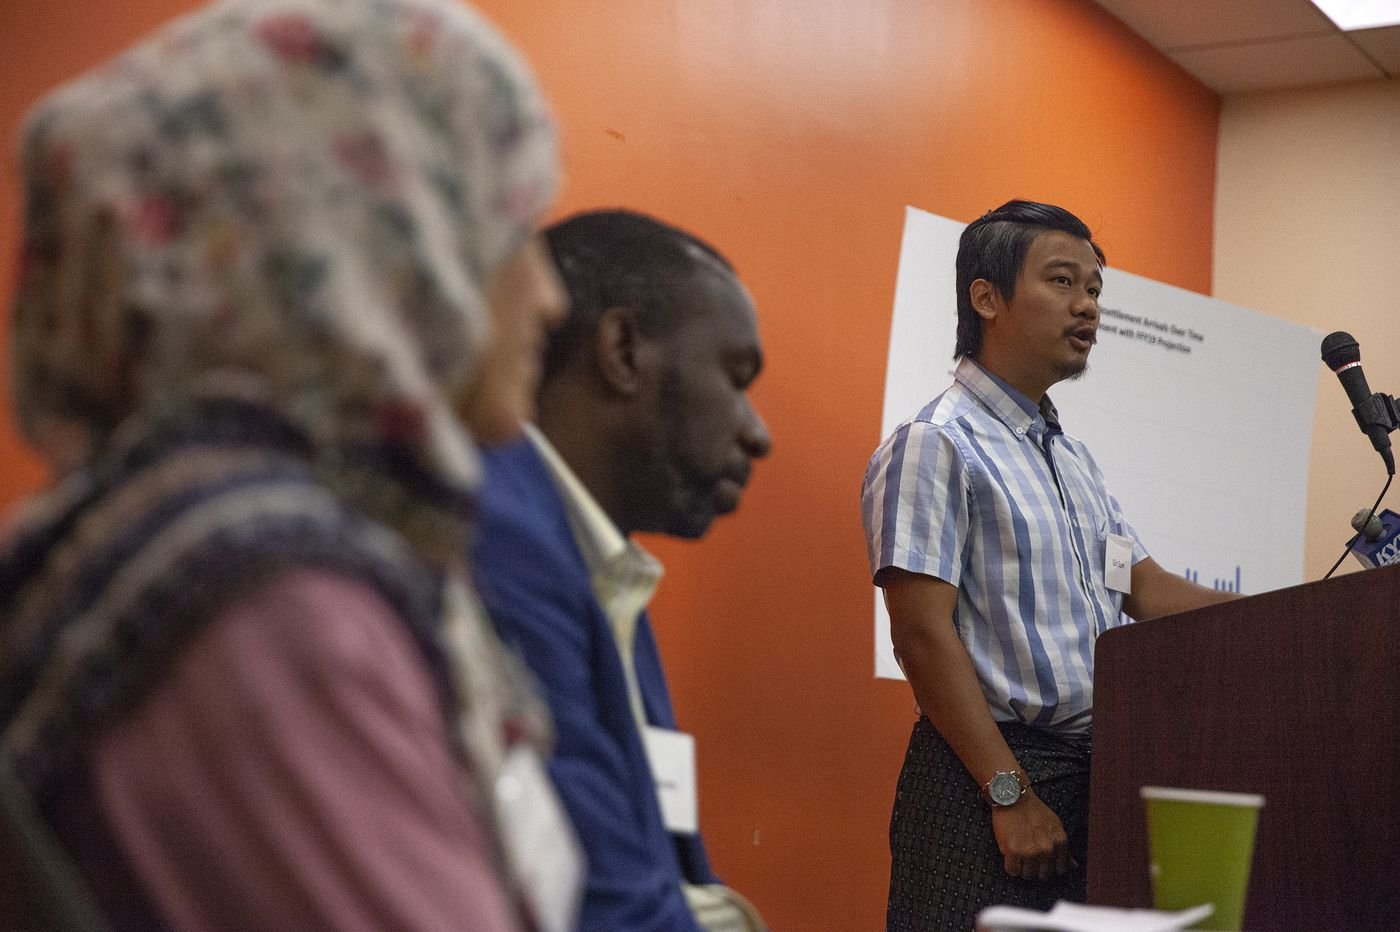 Philly agencies plead for greater admissions of refugees, as deadline nears for new cap